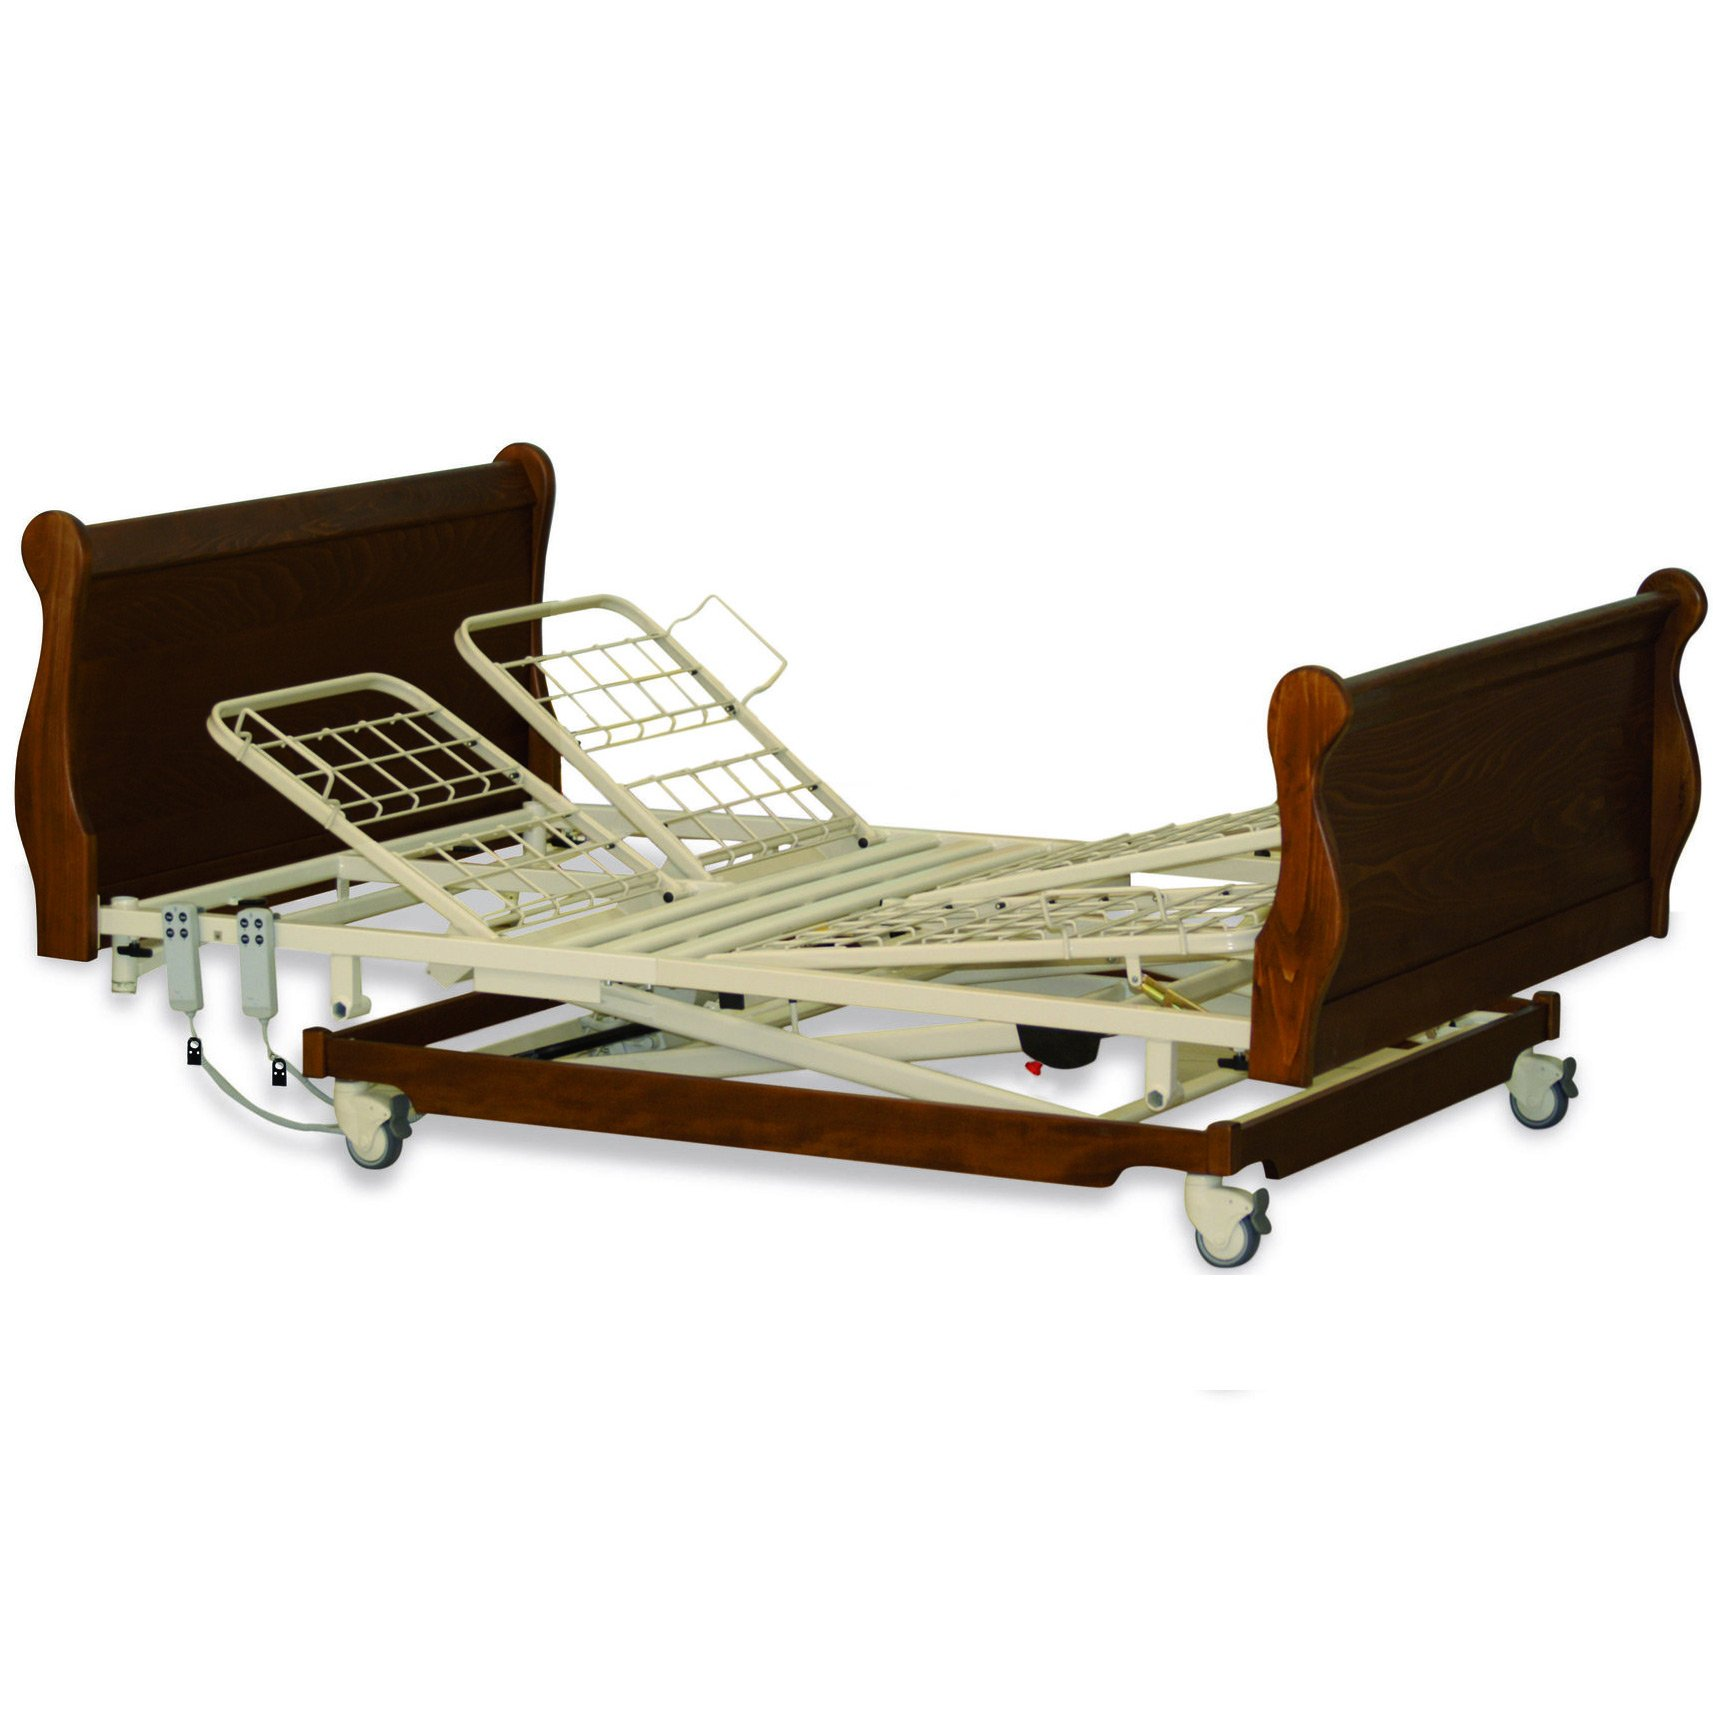 Solace 502 twin profiling, height adjustable bed.